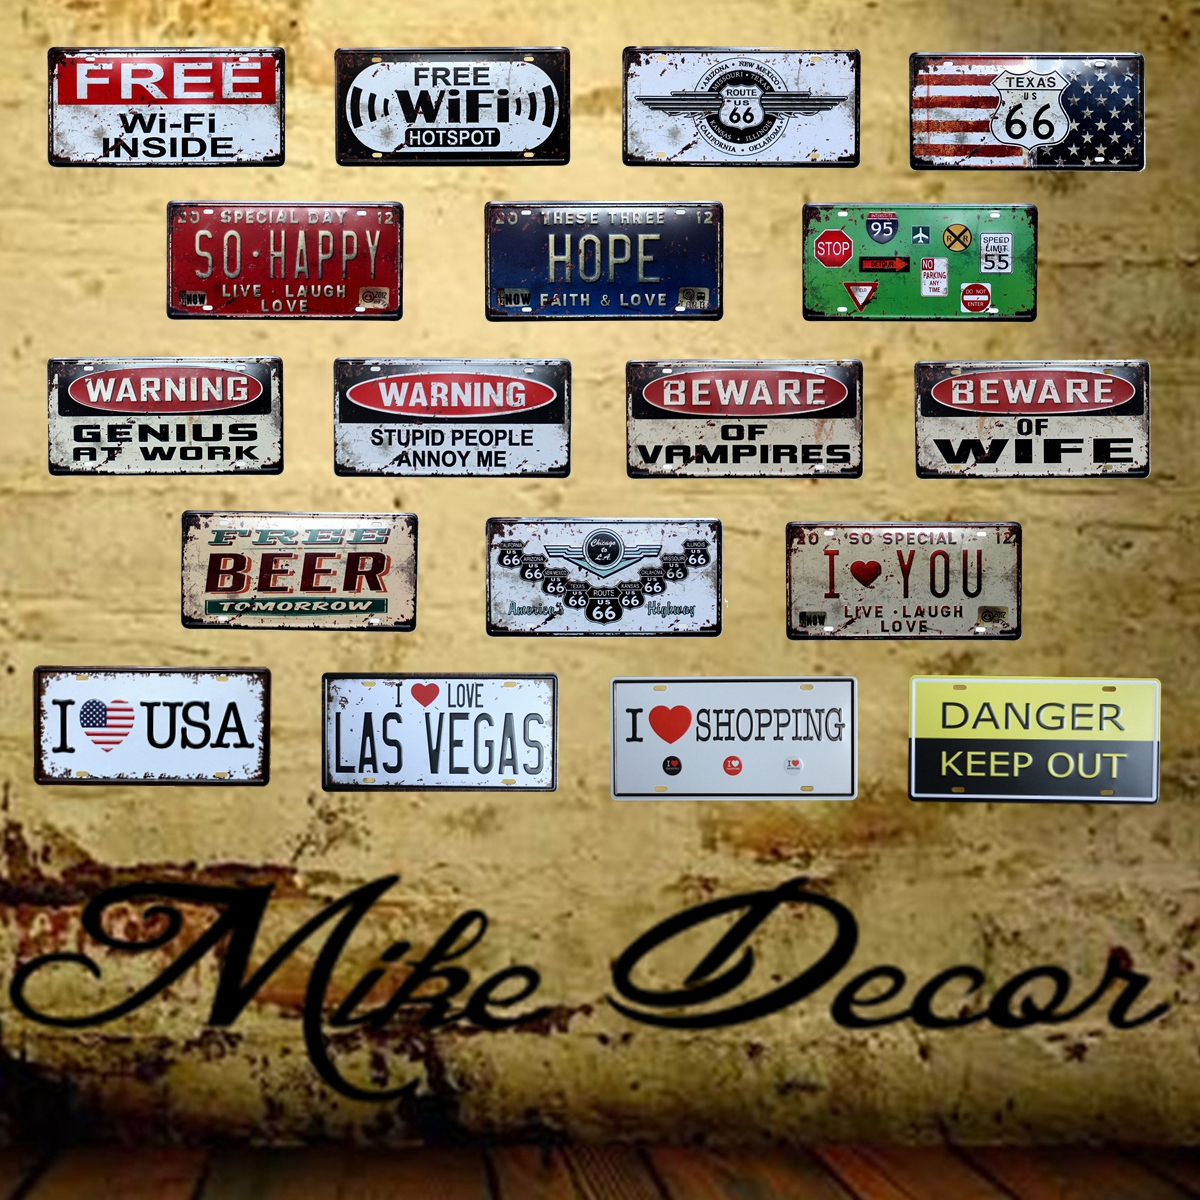 [Mike86] 2017 Nueva WiFI Route66 Letrero de metal Antiguo Craft Bar Hogar Placa de pared de hojalata Decoración 30 * 15 CM FG-113